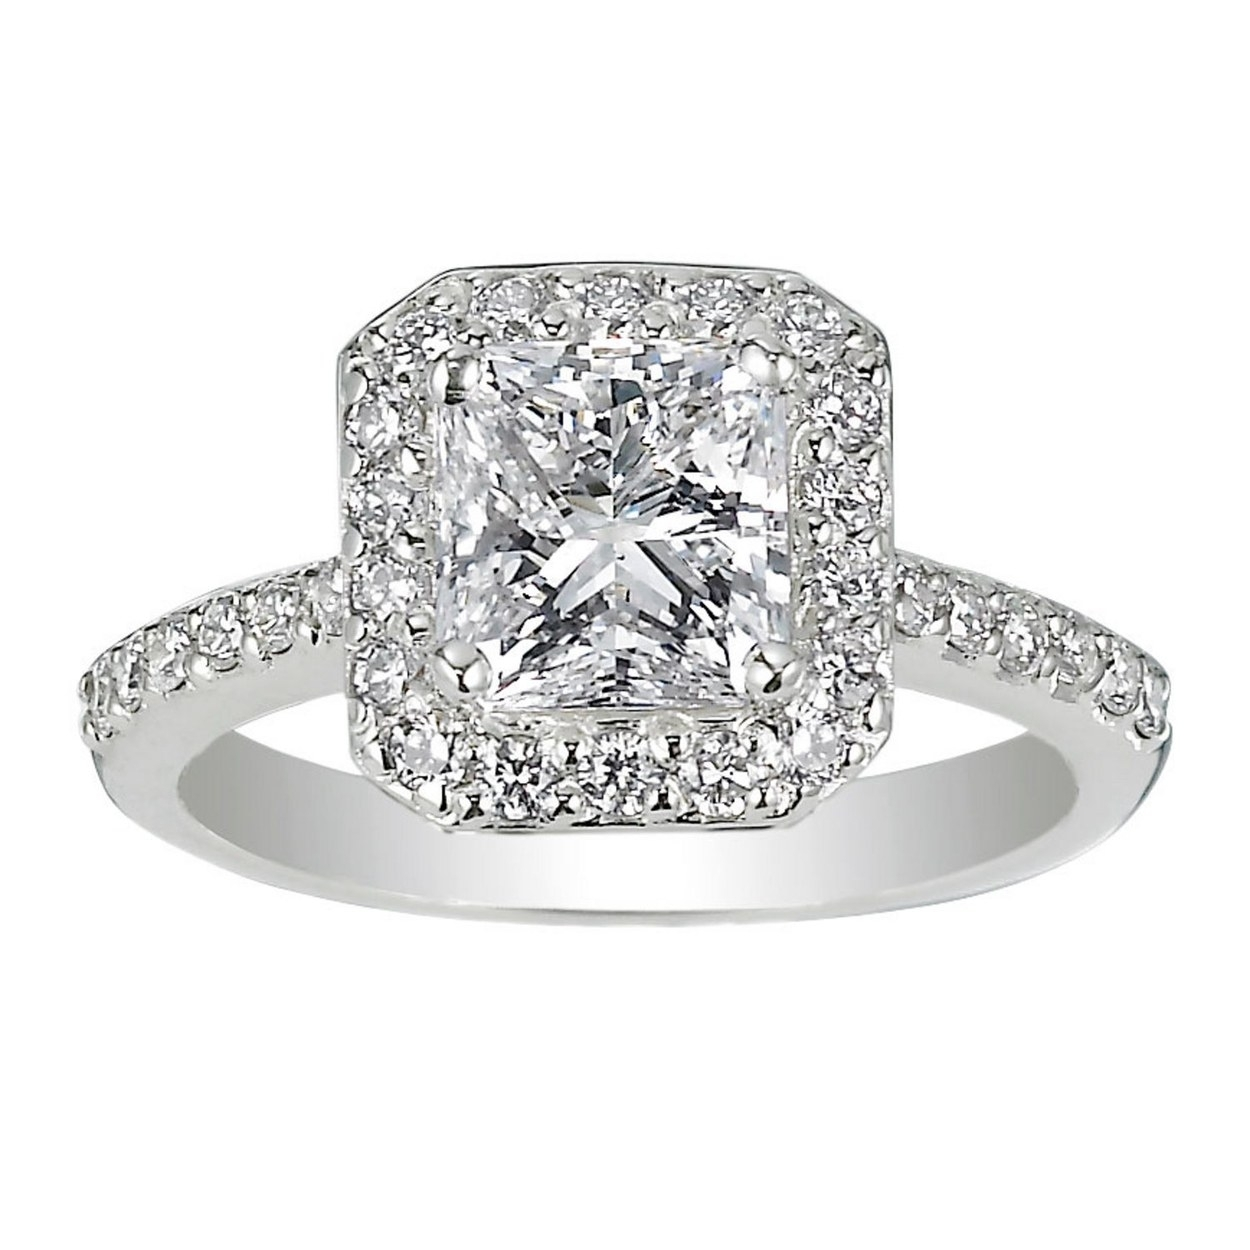 62 Diamond Engagement Rings Under $5,000 | Glamour Regarding Most Up To Date Oval Diamond Double Frame Twist Vintage Style Bridal Rings In 14k White Gold (View 3 of 15)